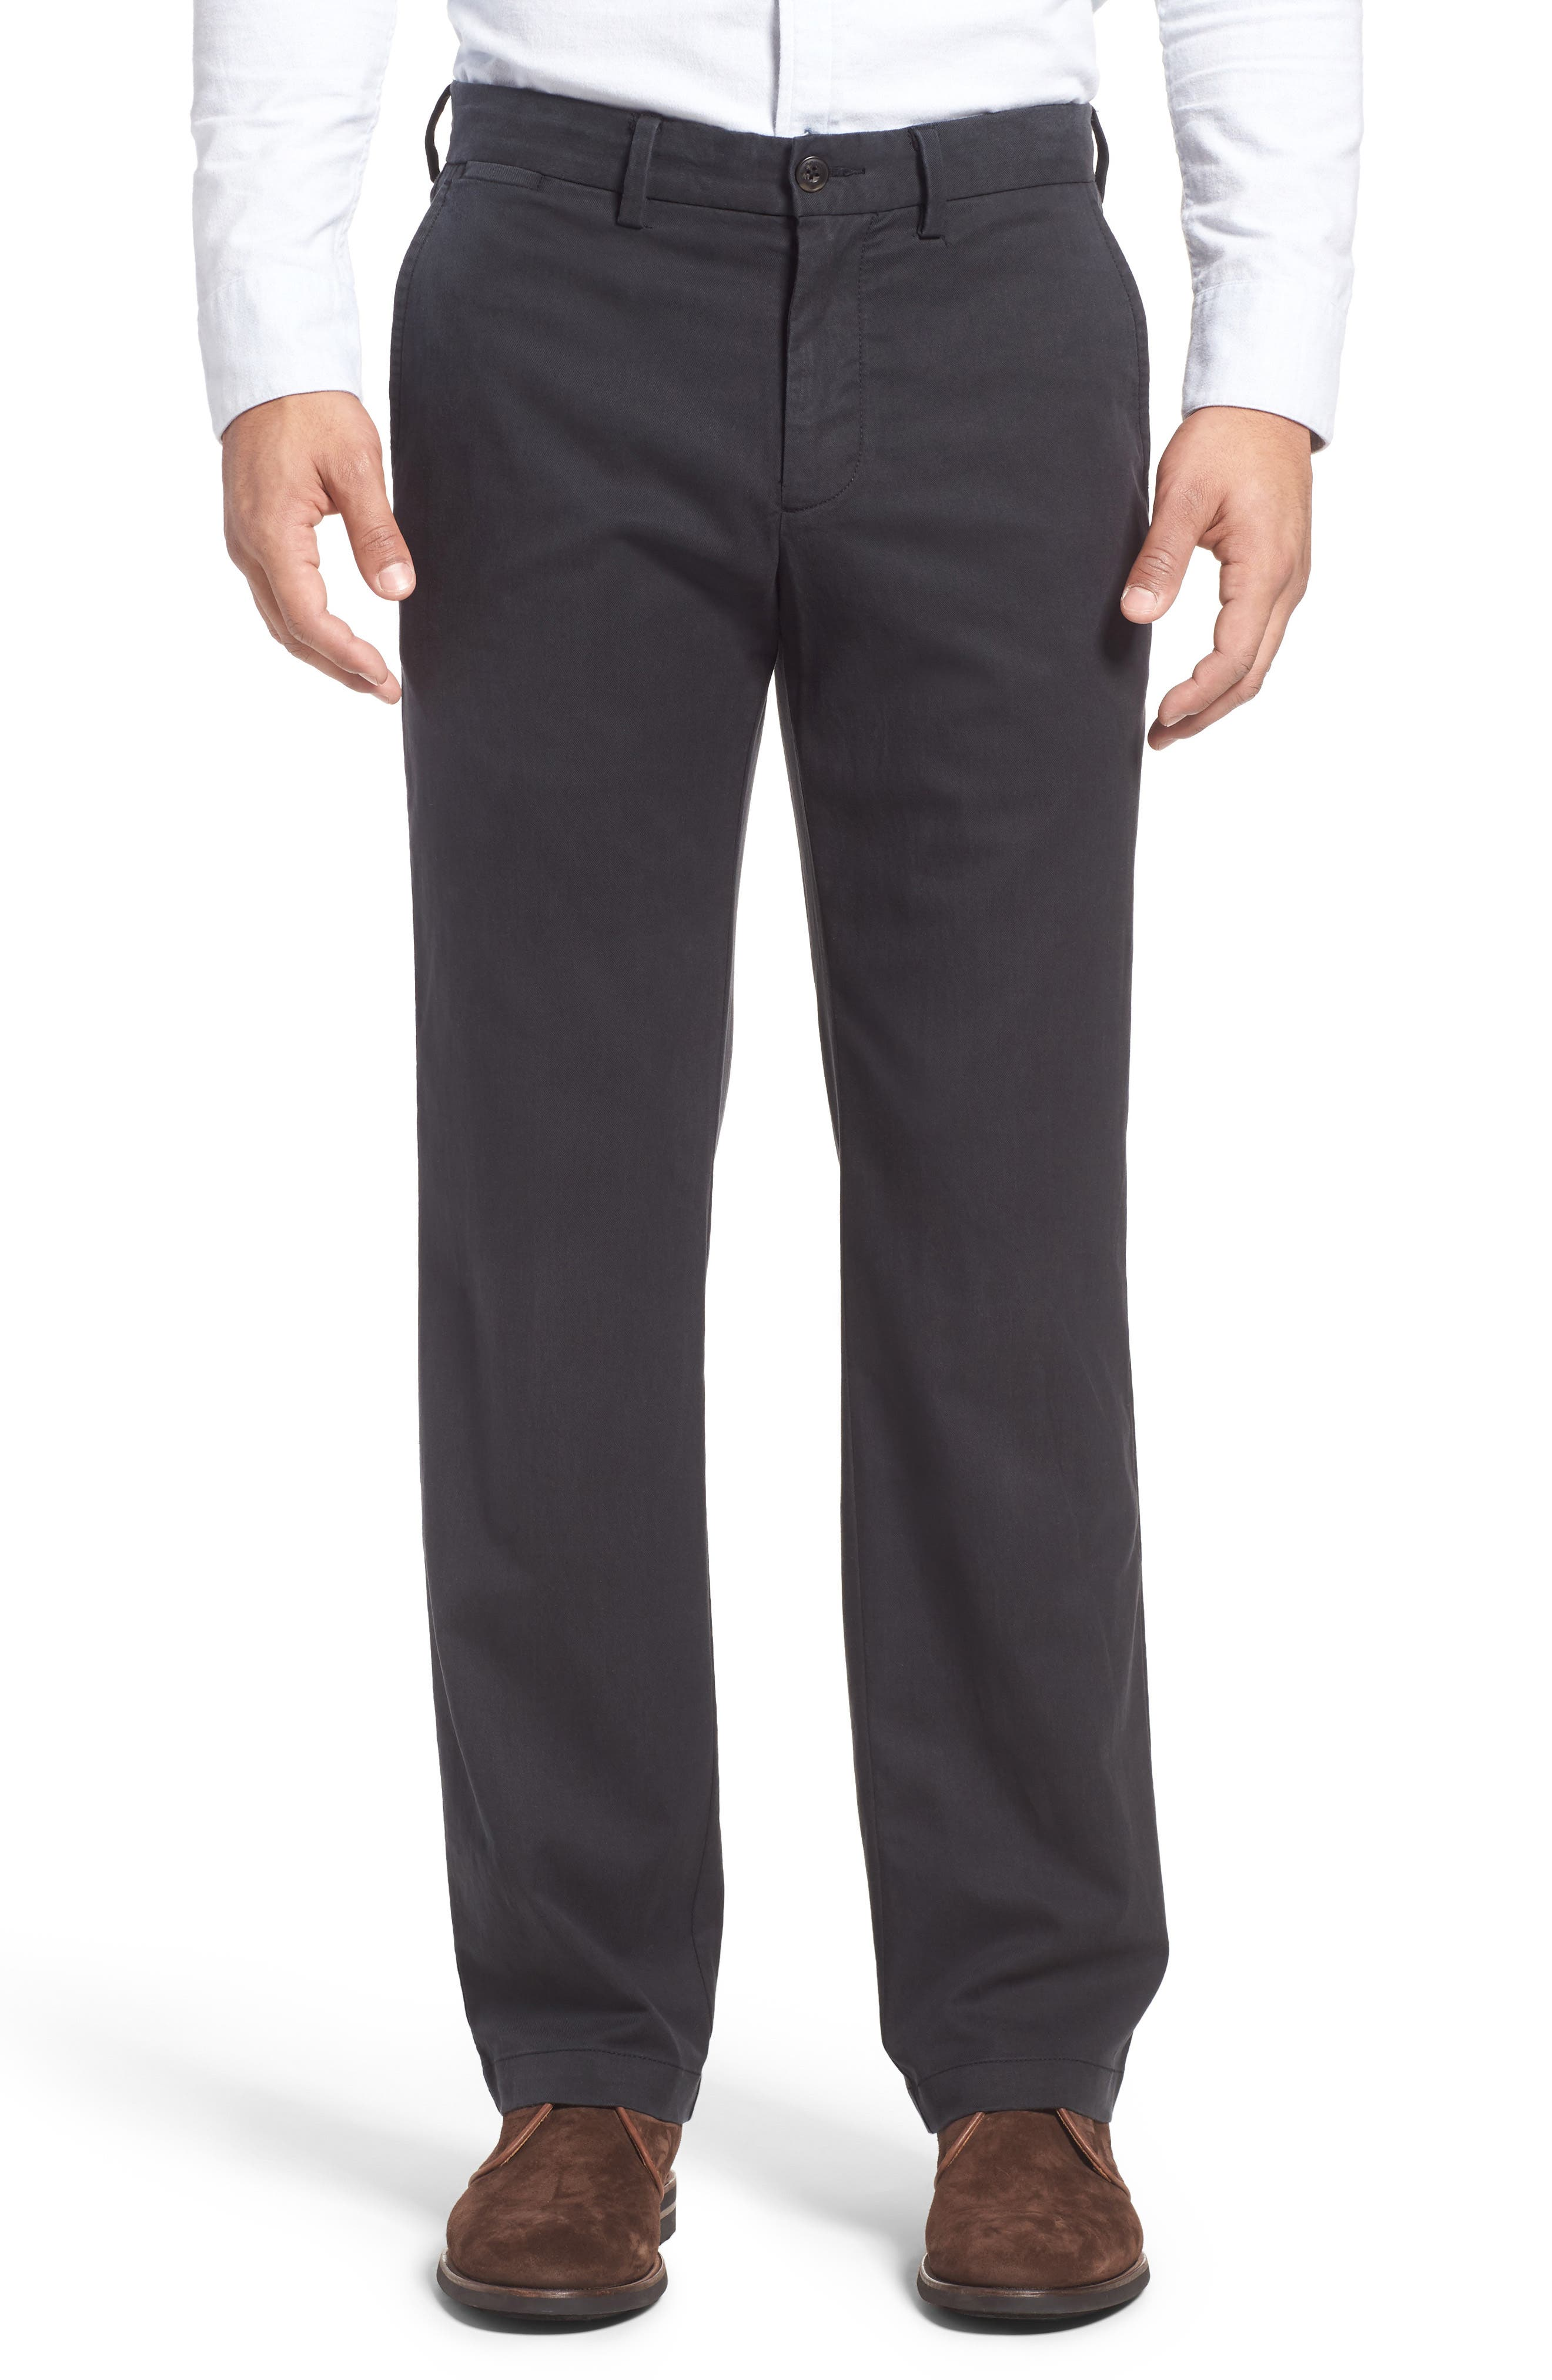 Offshore Flat Front Pants,                         Main,                         color, Black